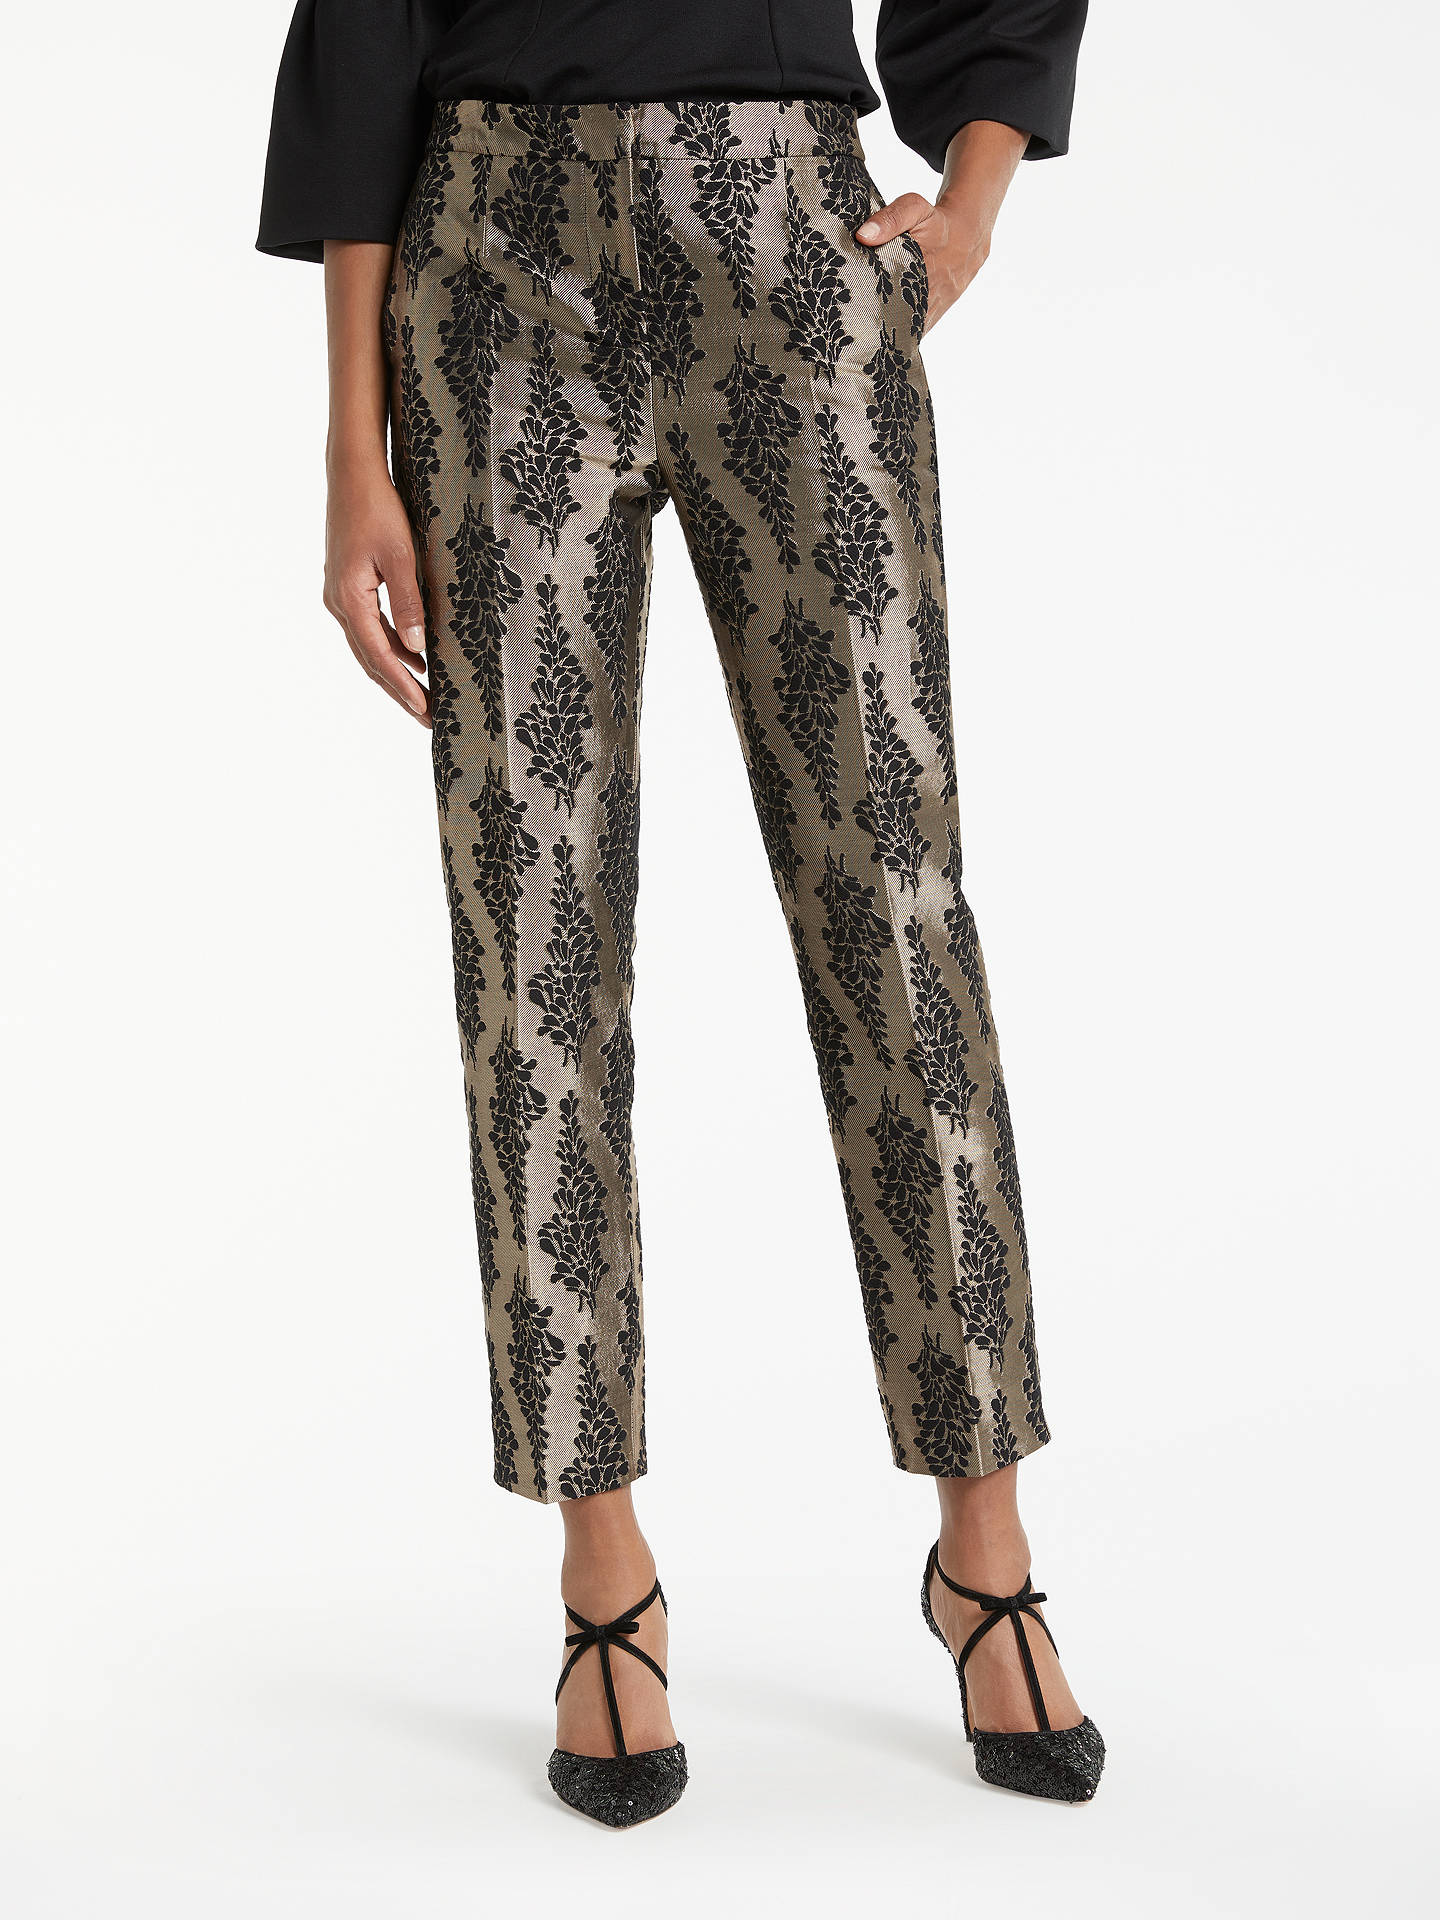 BuyBoden Jacquard Party Trousers, Black/Pewter, 8 Online at johnlewis.com